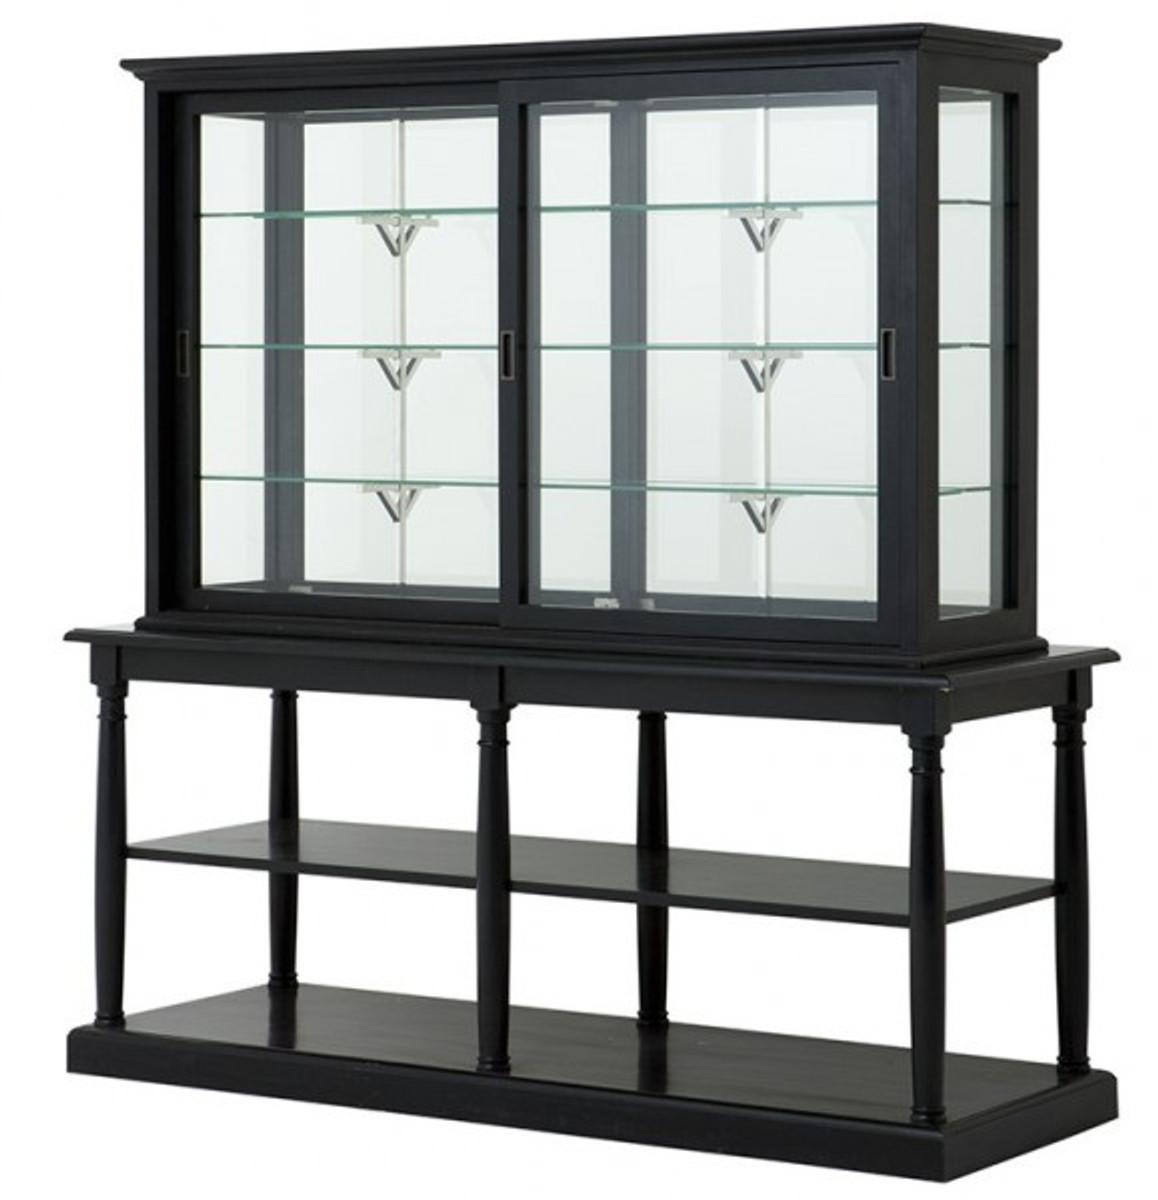 Luxury Glass display cabinet with storage Store Equipment Store ...